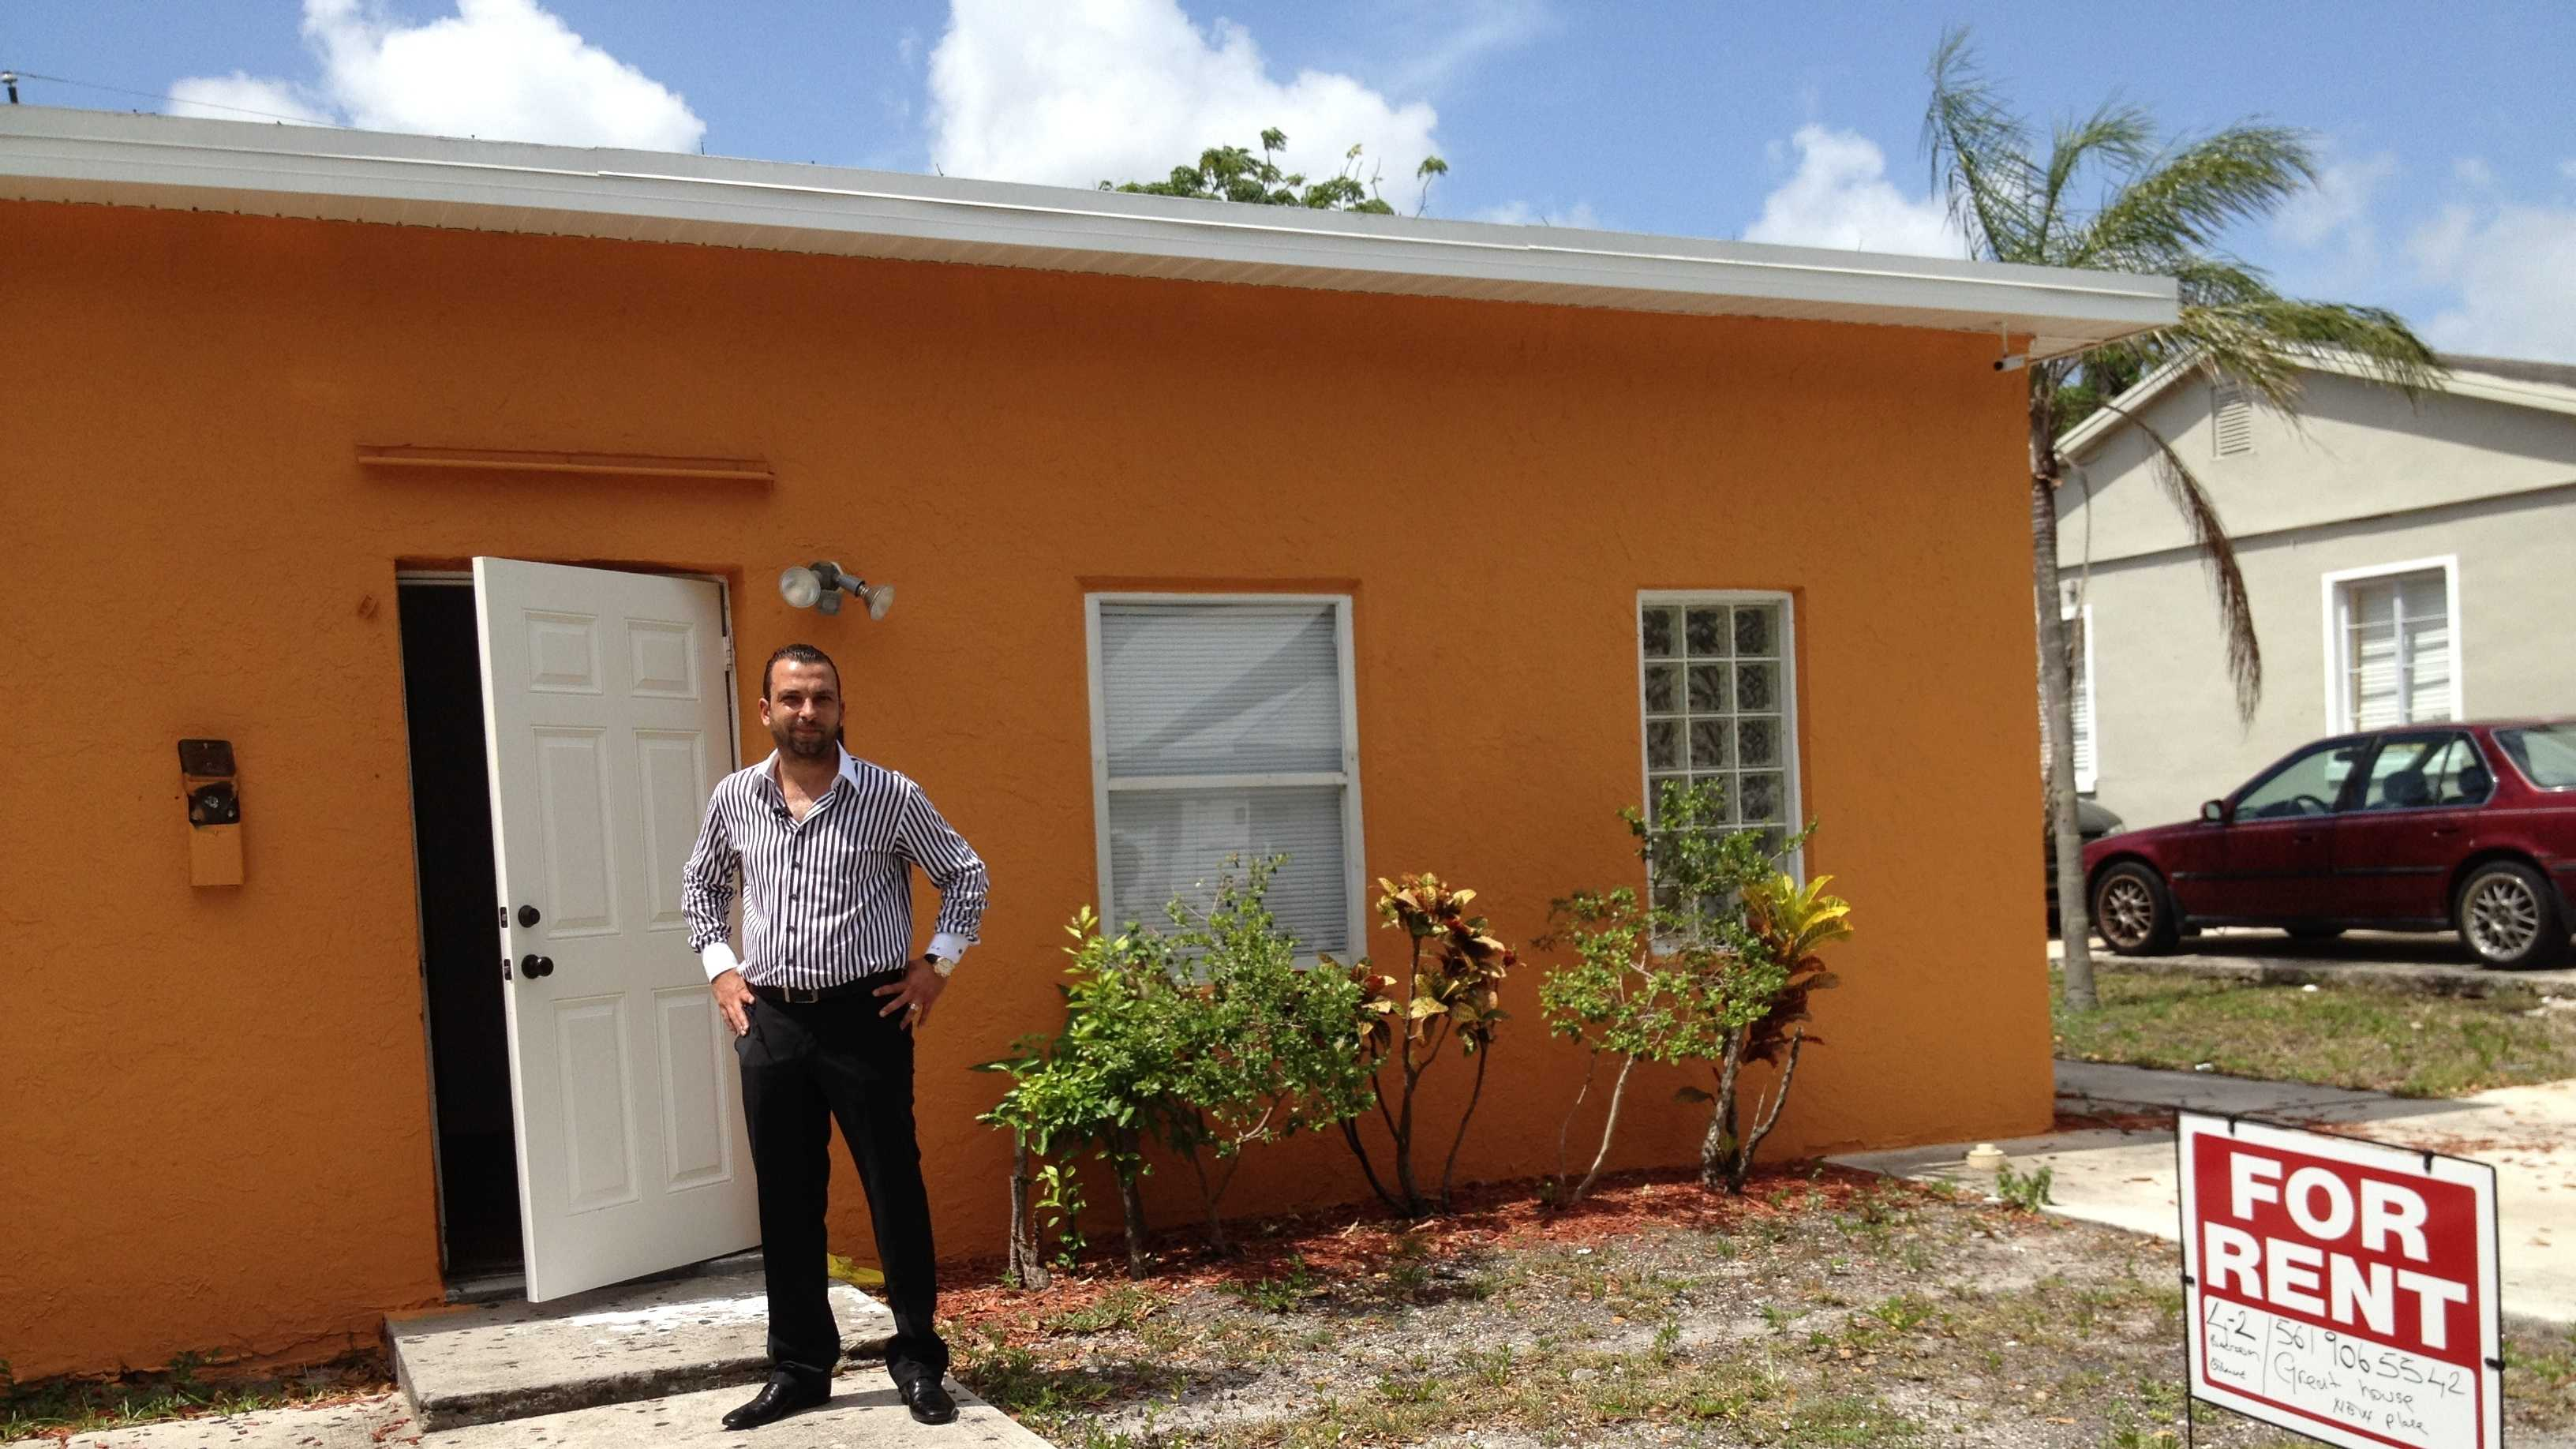 Erdem Altinok, who owns 22 rental units, stands outside his newly renovated property north of downtown West Palm Beach.